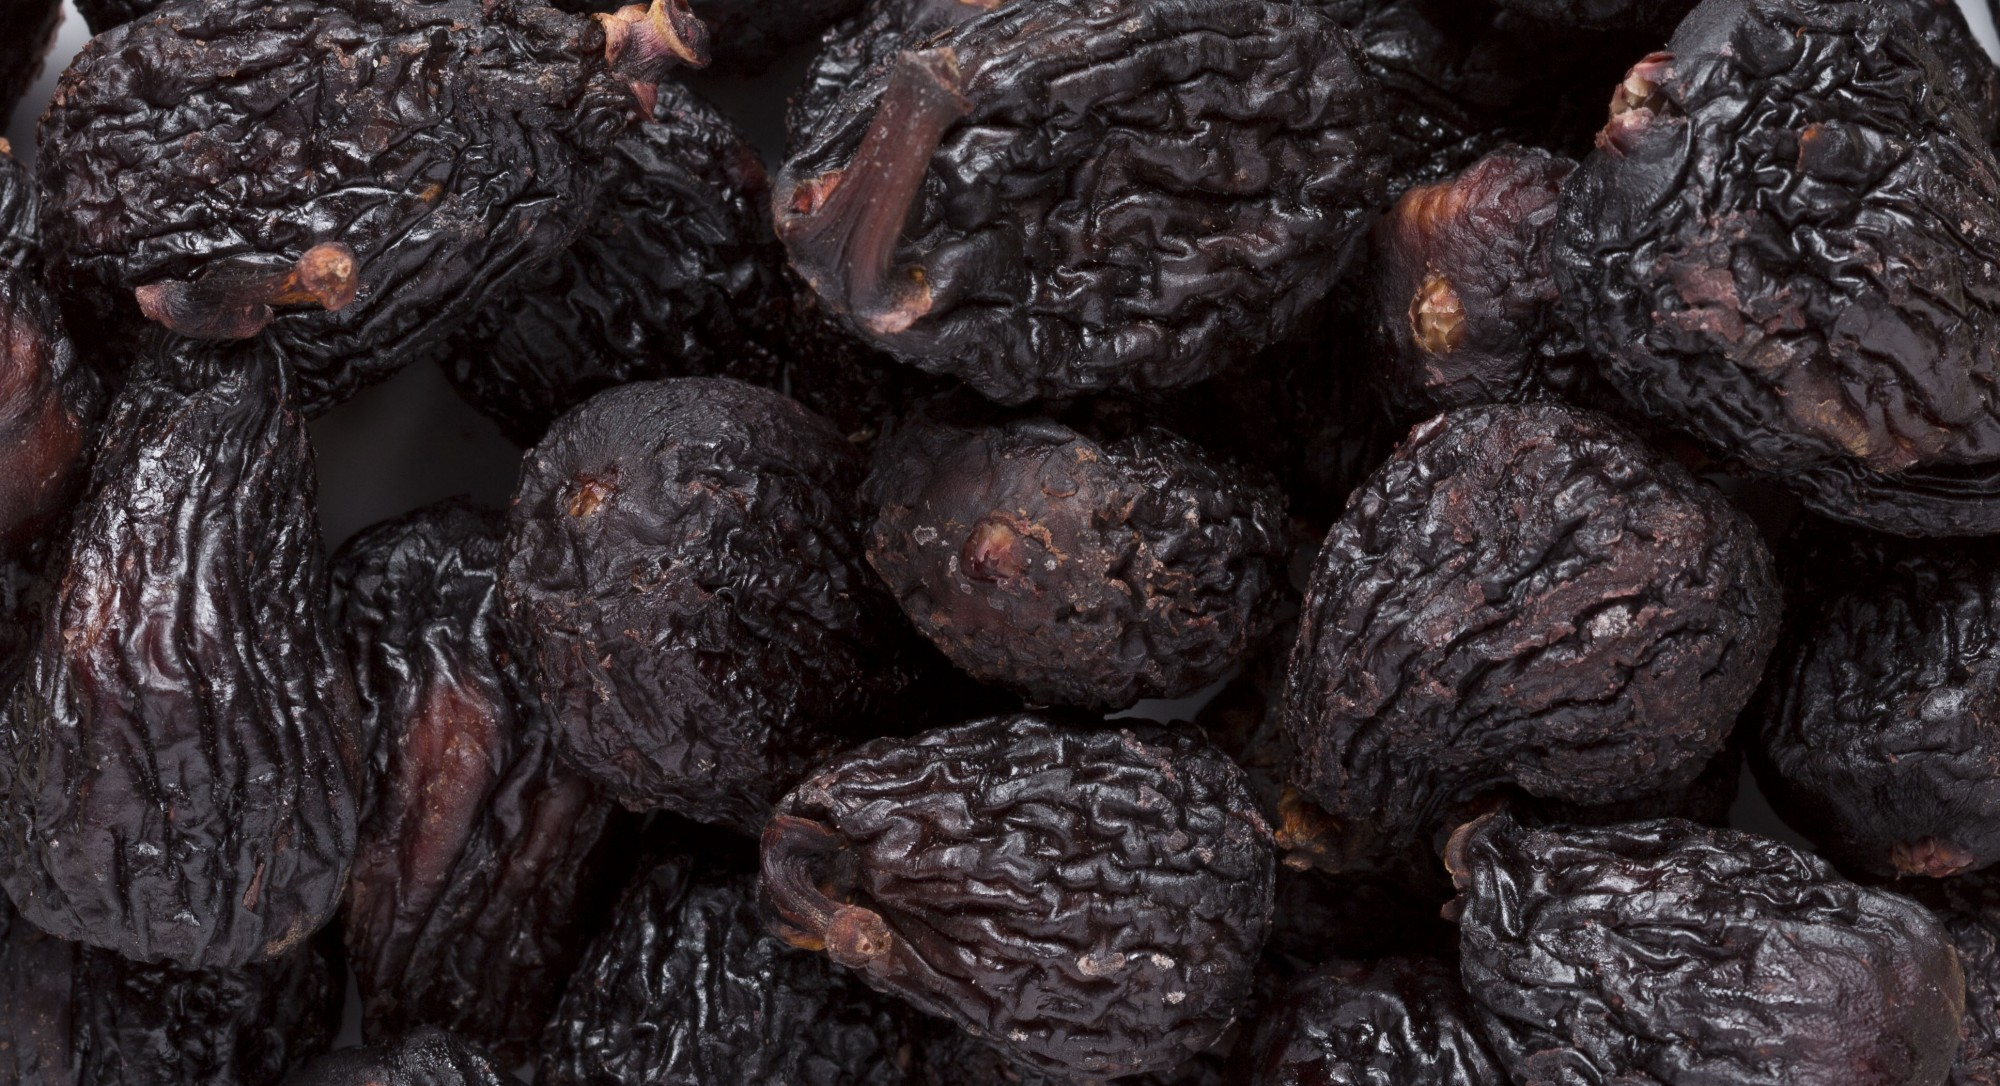 Ingredient of the Week: The Fascinating Benefits of Figs Might Surprise You